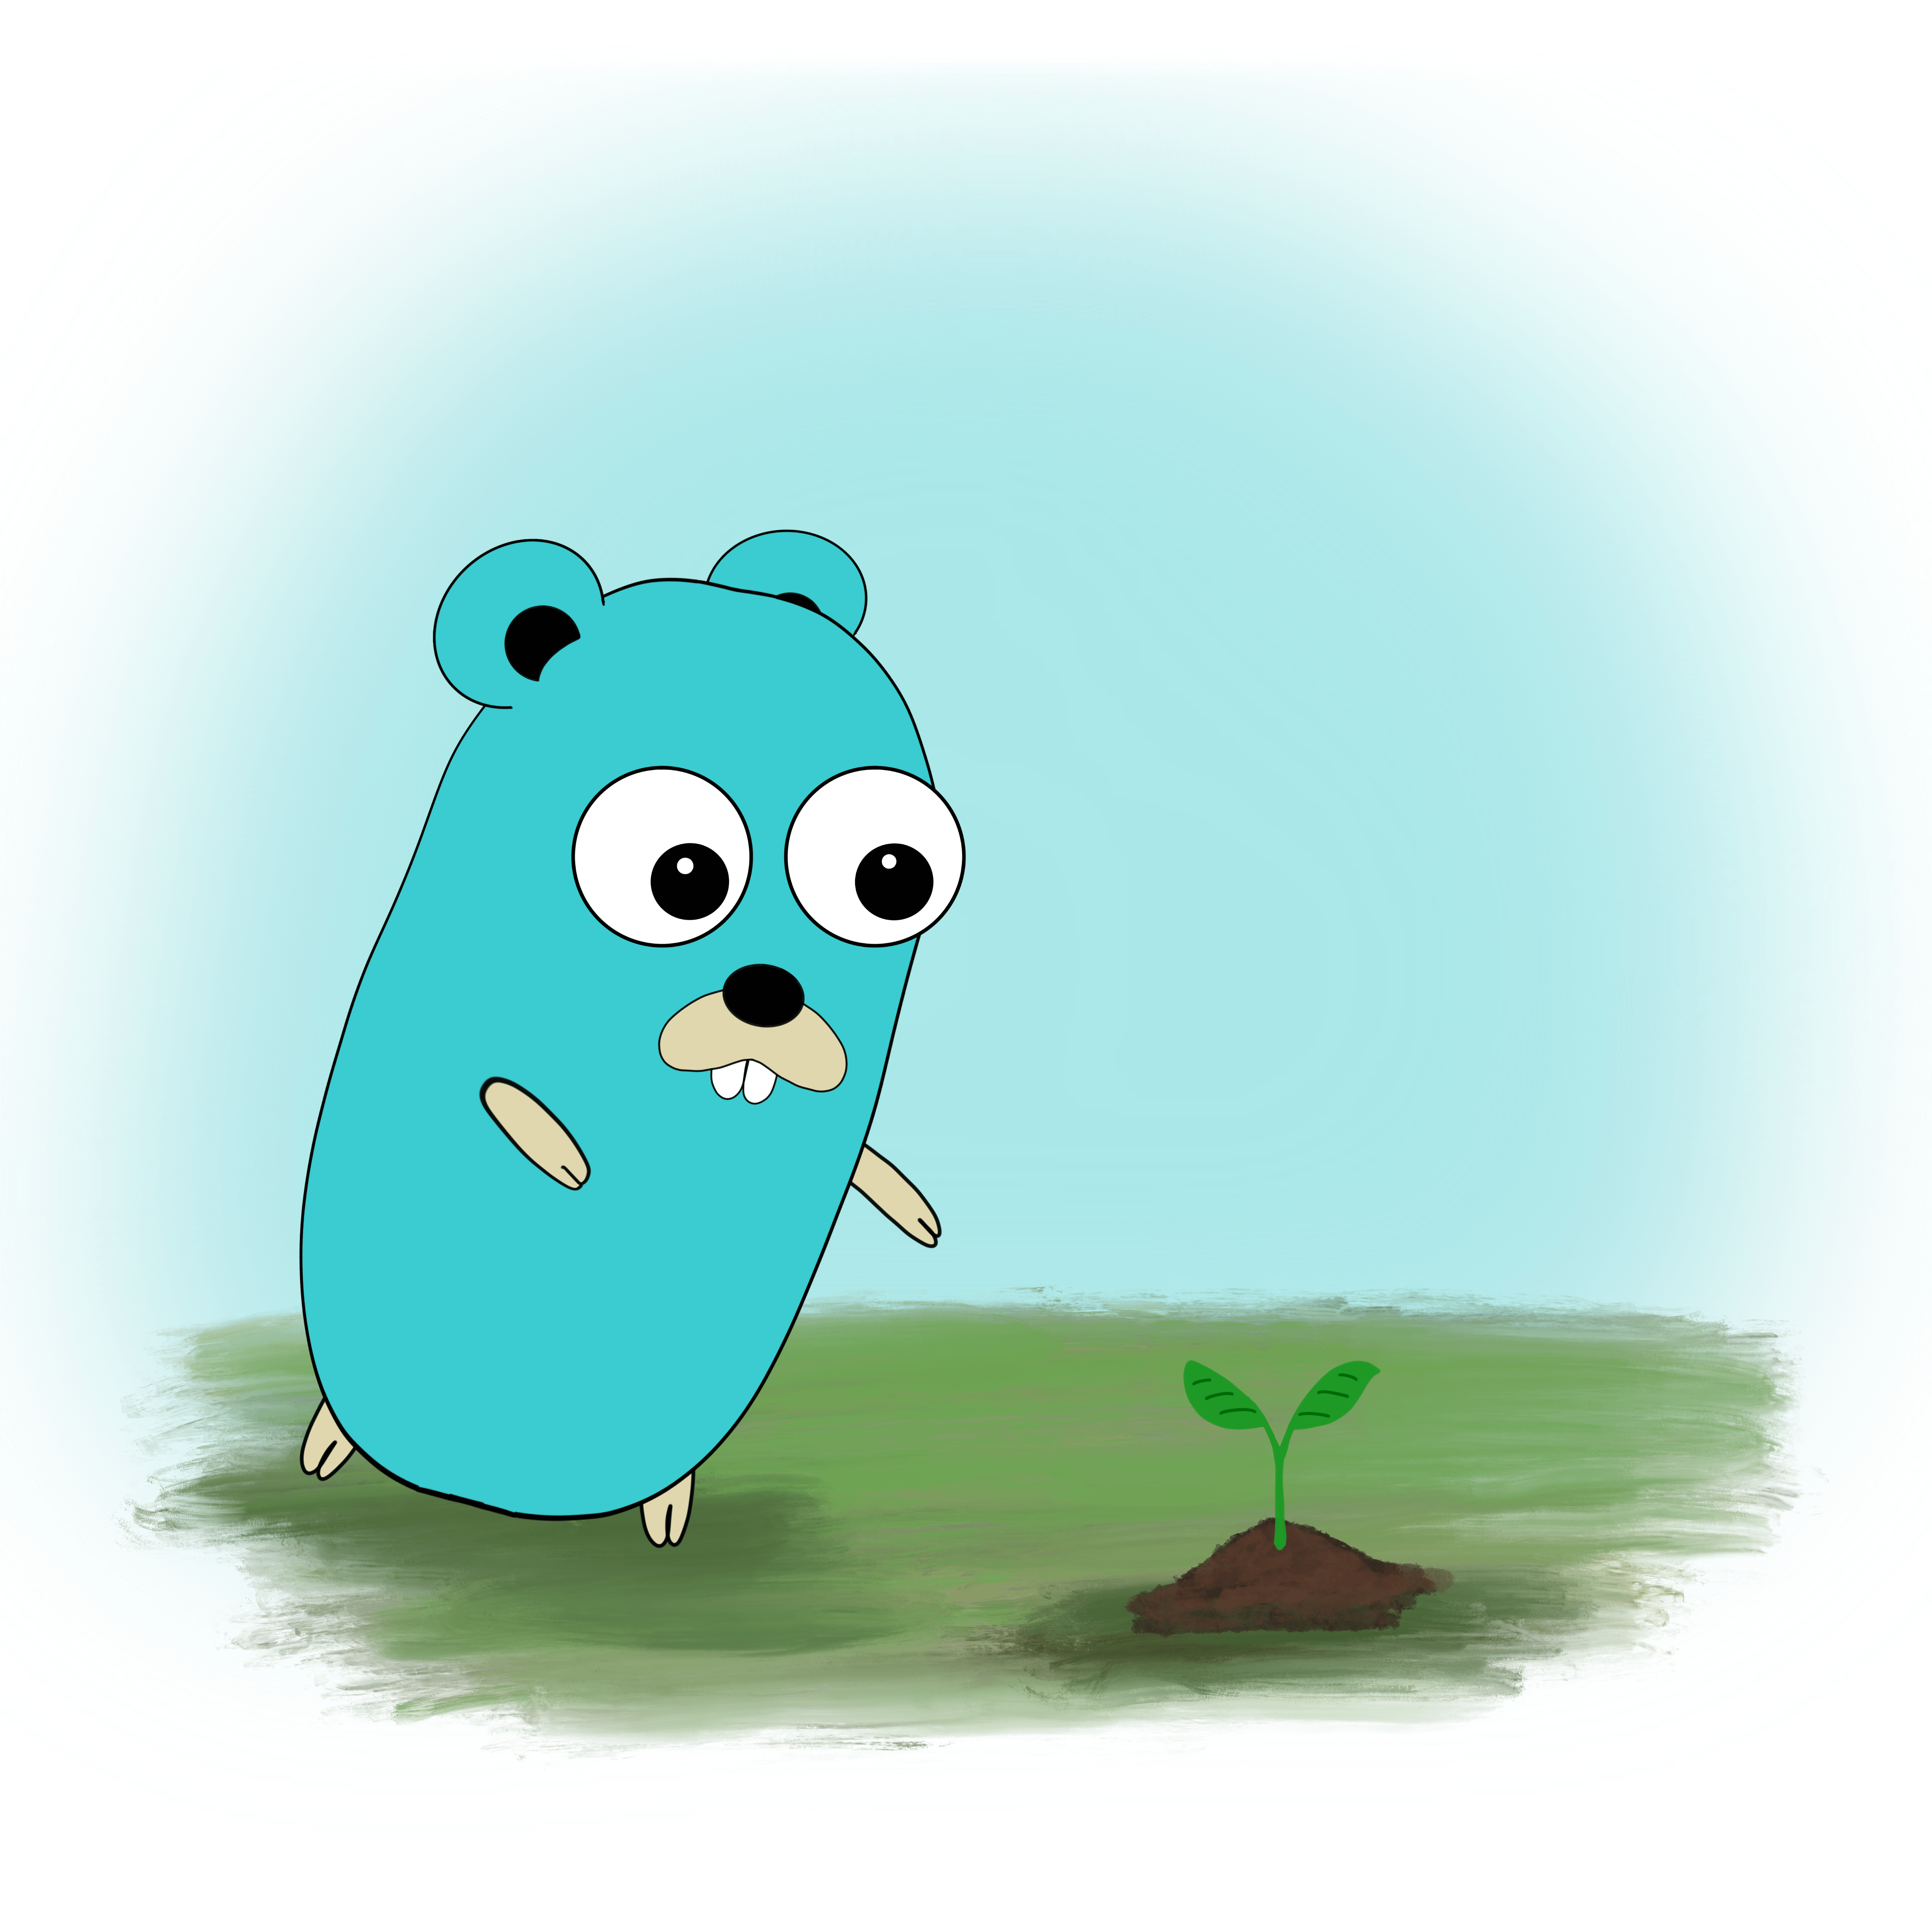 Gopher planting a tree